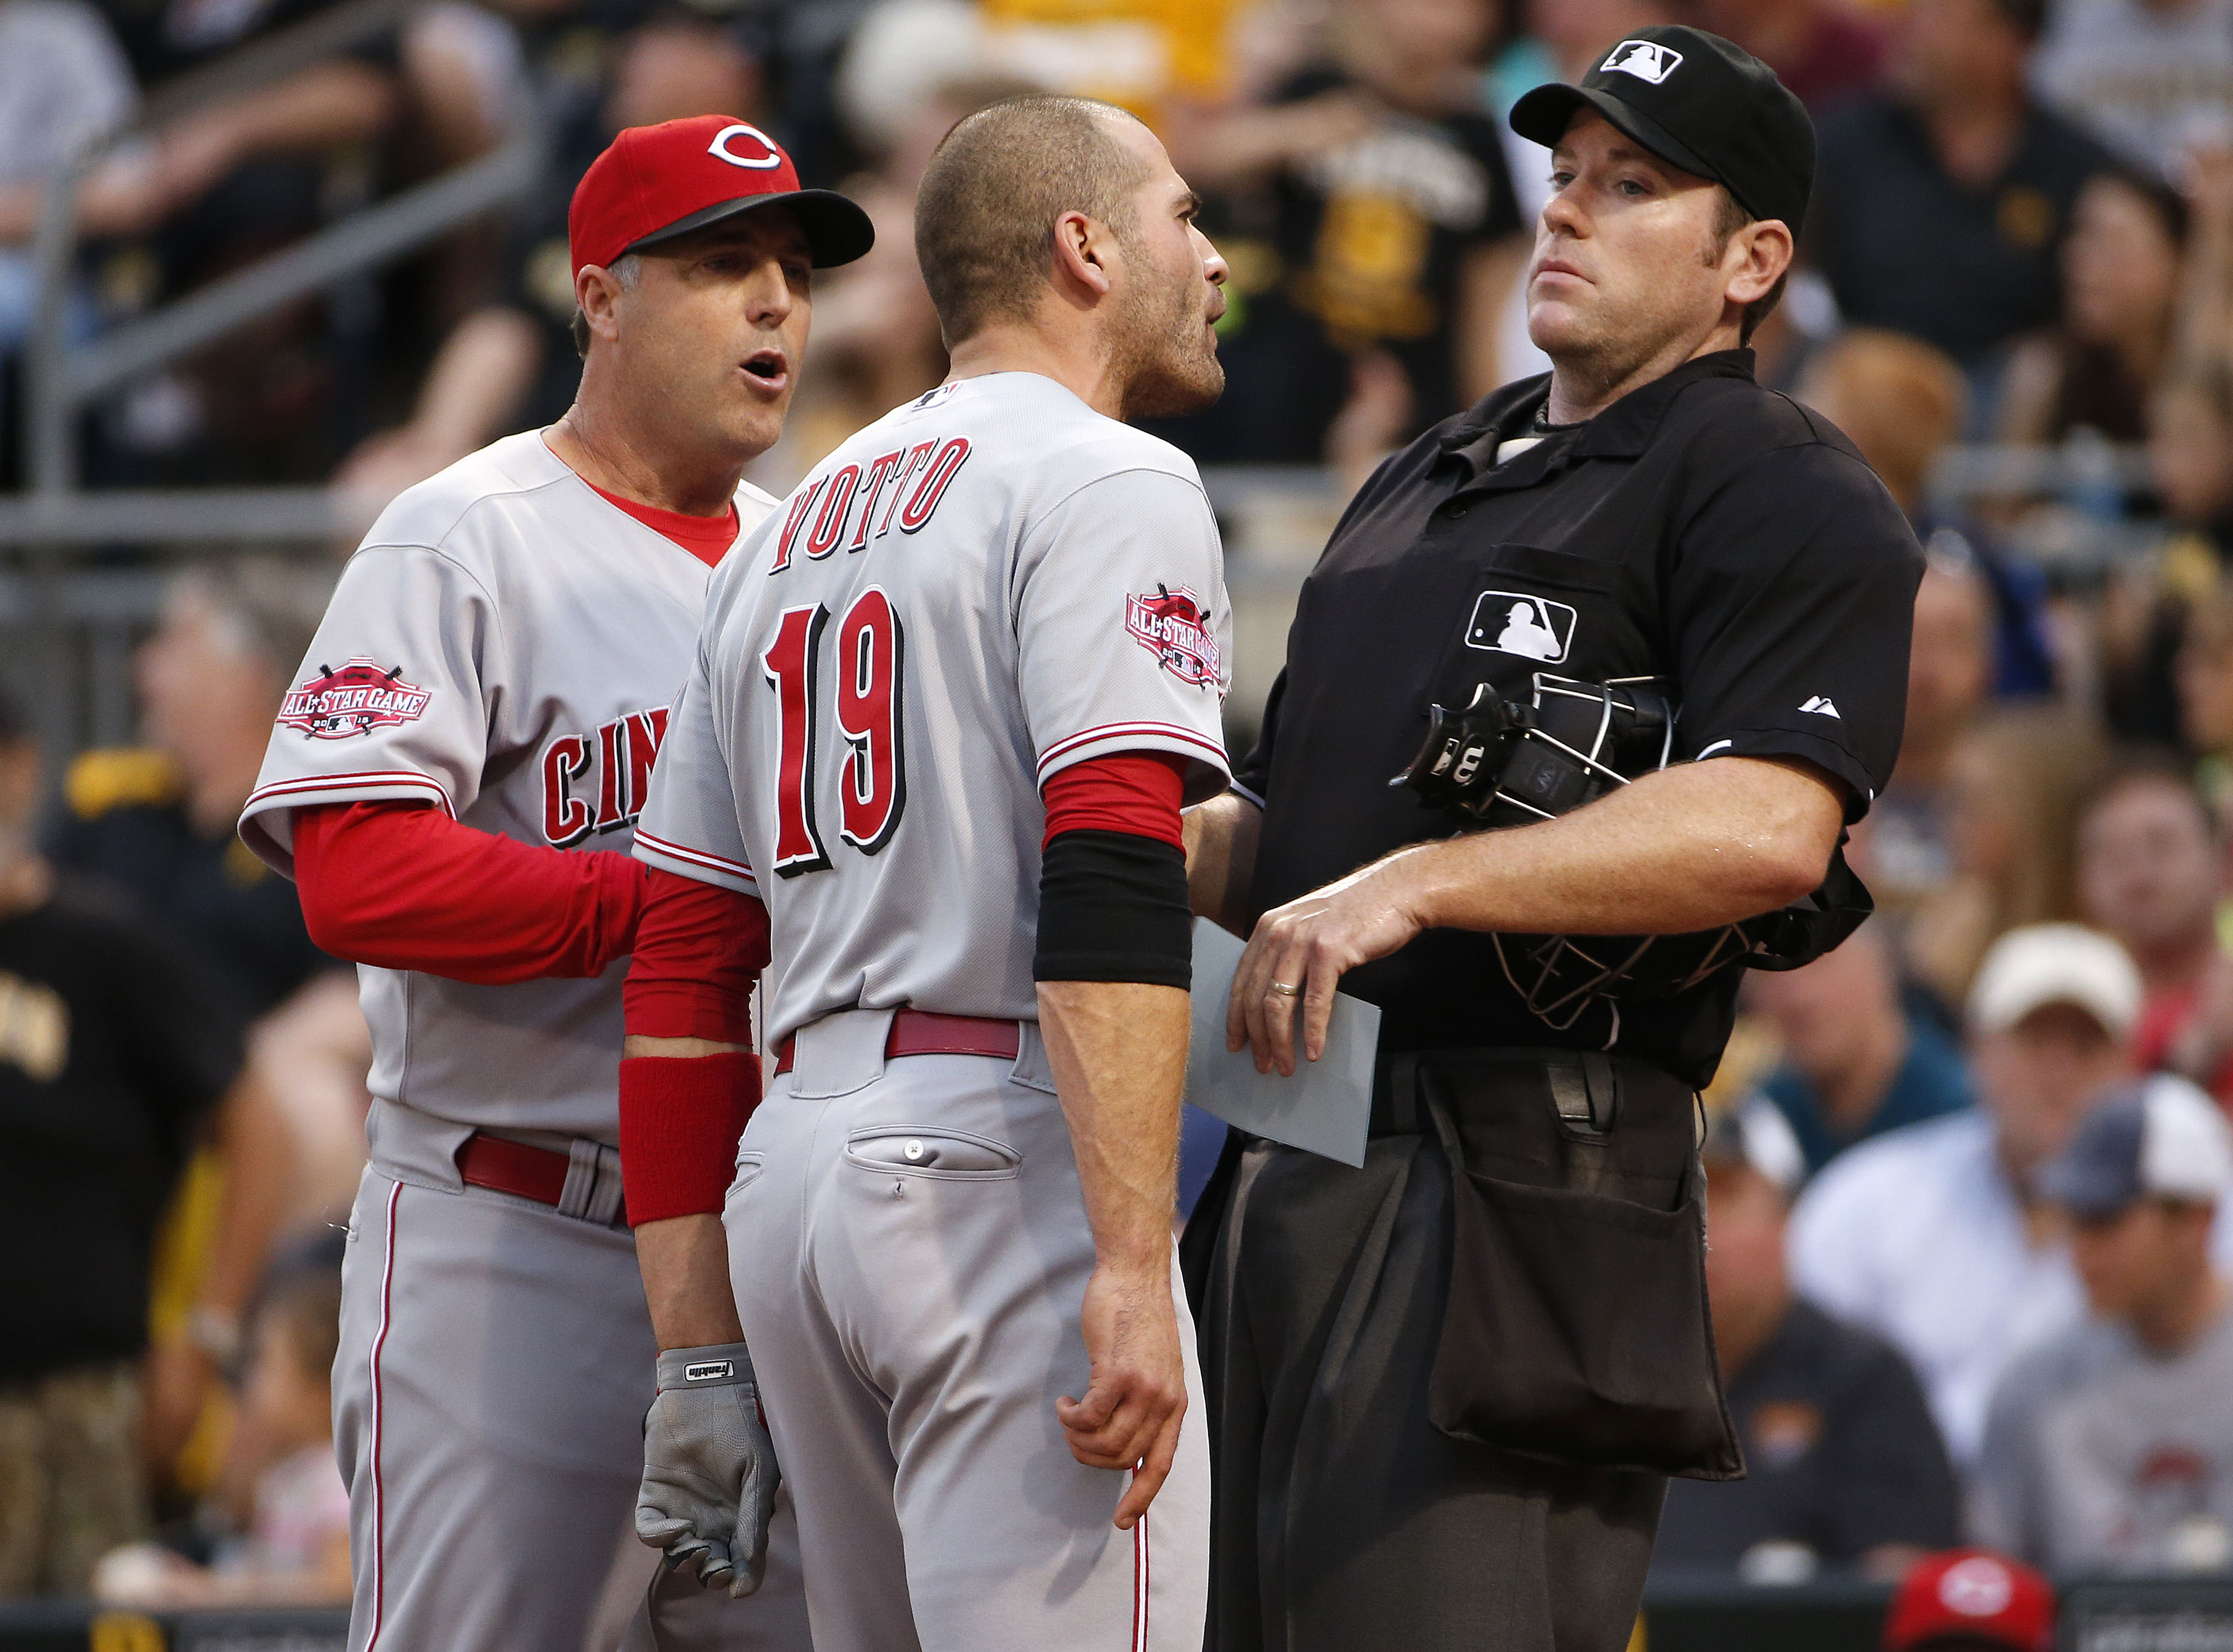 Cincinnati Reds' Joey Votto (19) bumps into umpire Chris Conroy, right, as he talks with Reds manager Bryan Price, left, during the third inning of a baseball game against the Pittsburgh Pirates, Wednesday, May 6, 2015, in Pittsburgh. Votto was ejected fr